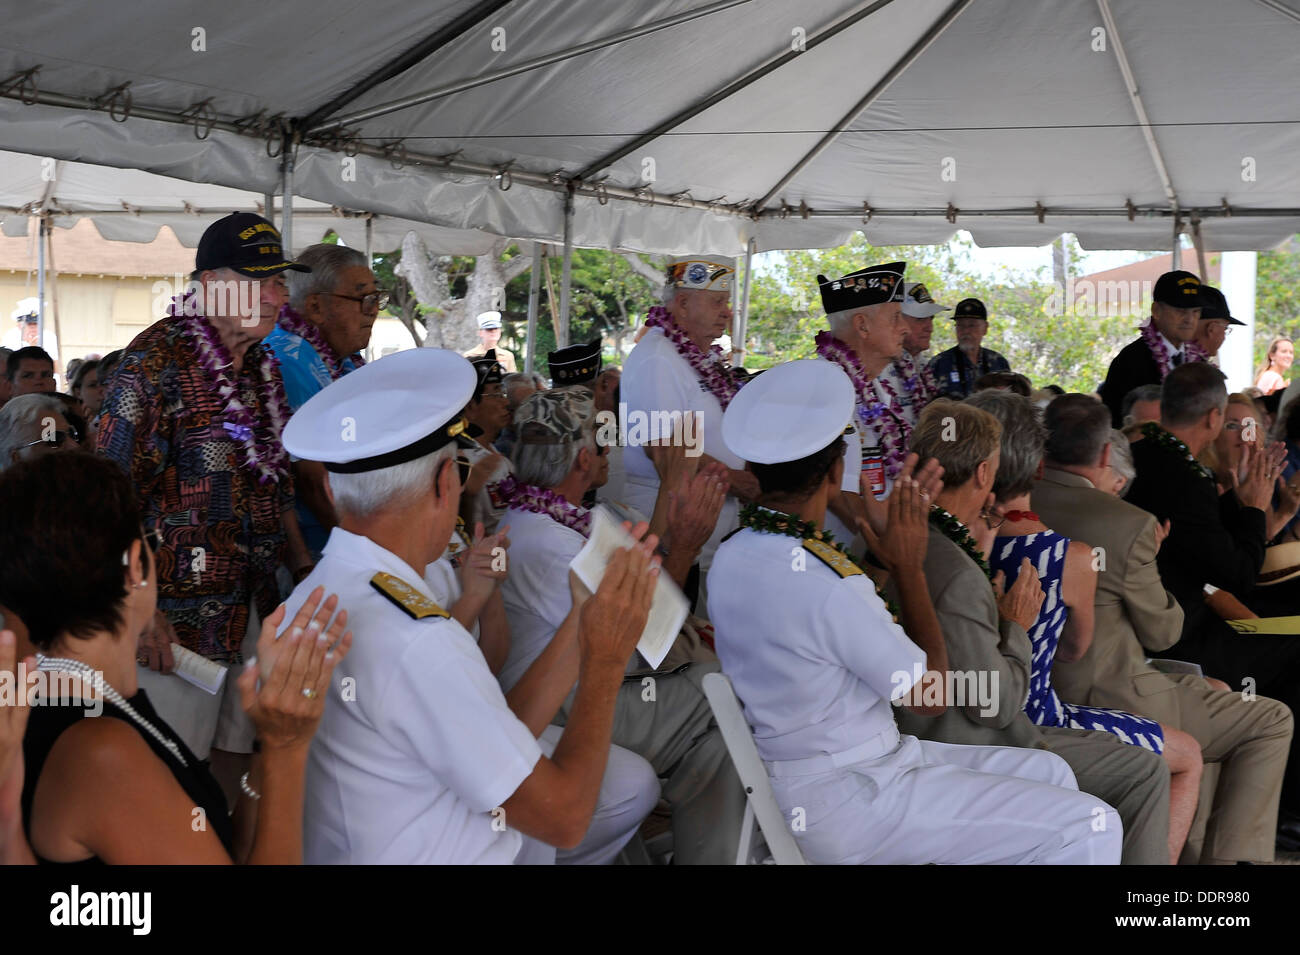 World War II survivors receive recognition at the USS Missouri Memorial Association 68th anniversary celebration commemorating The End of World War II, Monday, Sept. 2, at the Battleship Missouri Memorial, Pearl Harbor, Hi. The ceremony, was followed by t - Stock Image